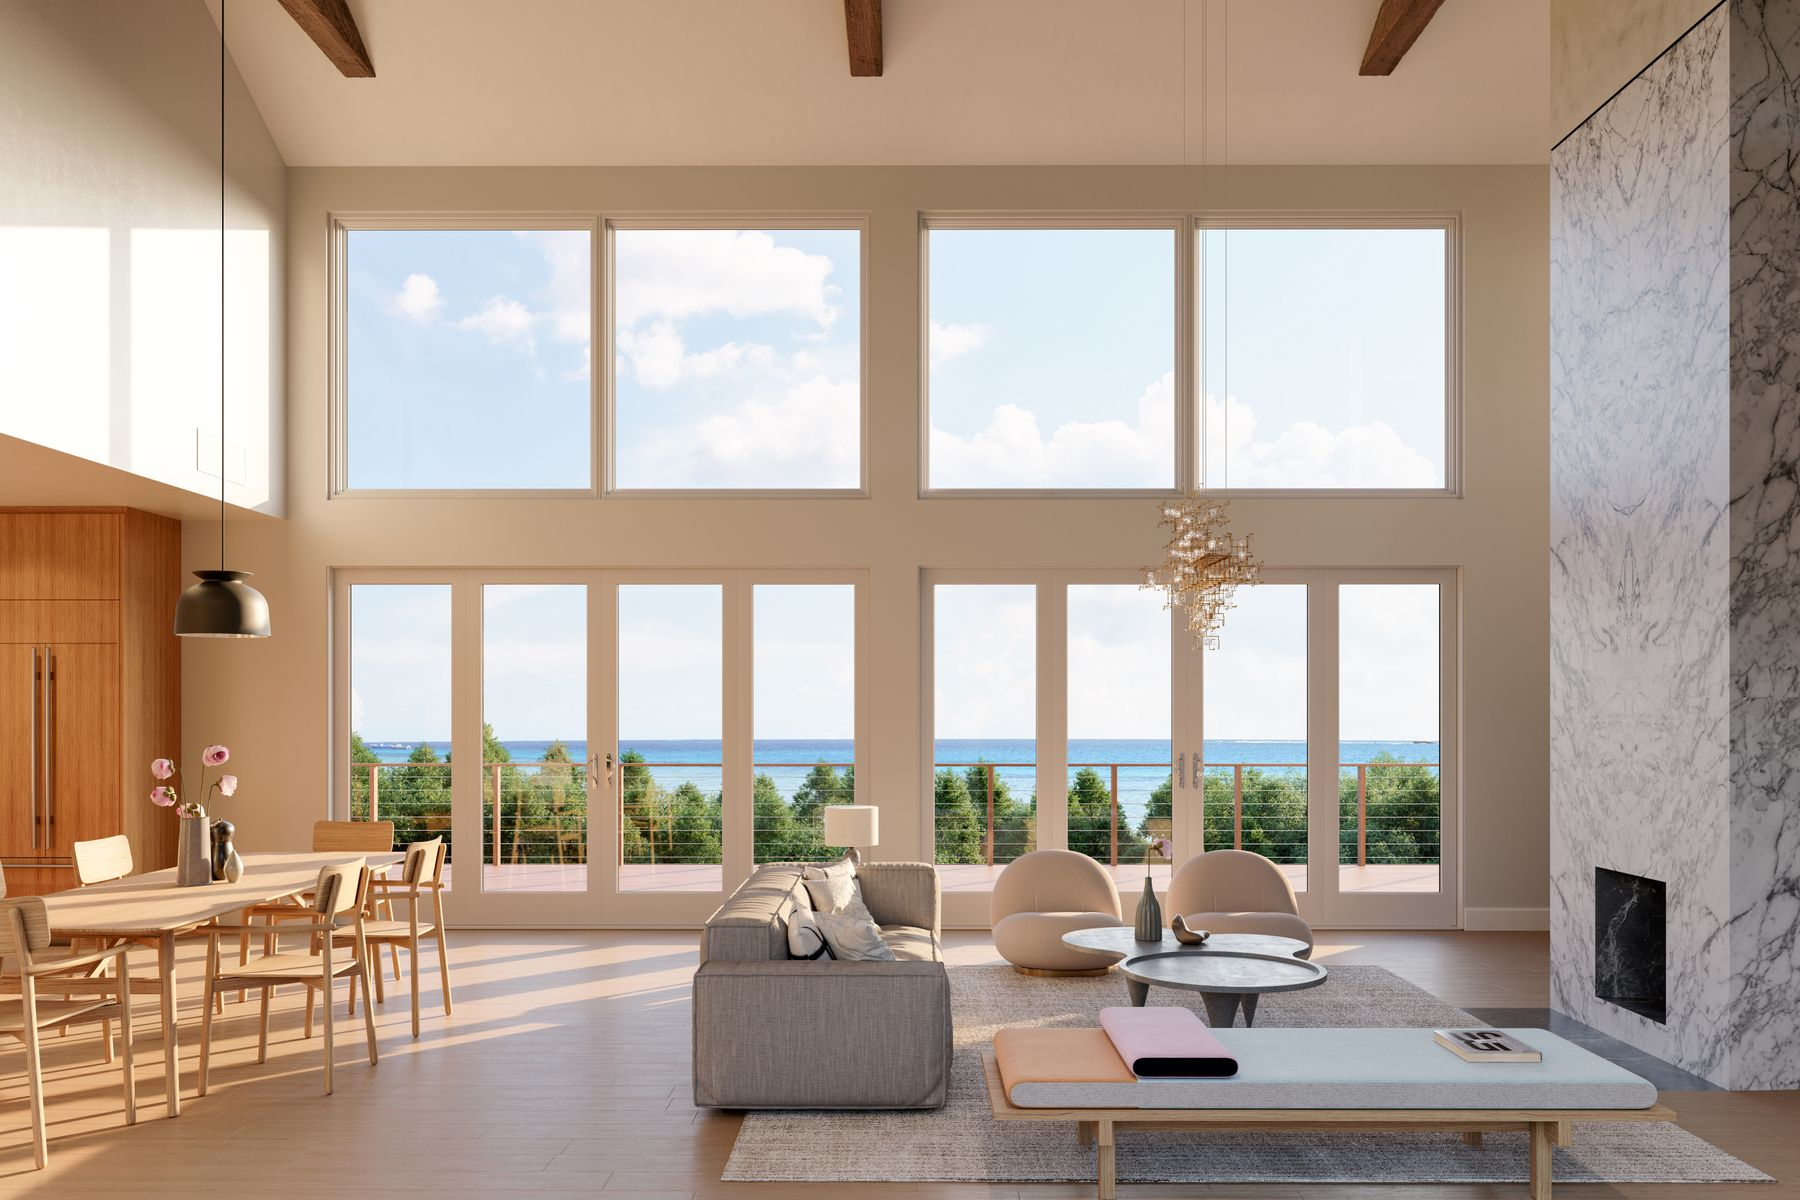 Single Family Homes for Active at ATELIER 211 OCEAN VIEW COTTAGE 211 Bluff Road Amagansett, New York 11930 United States